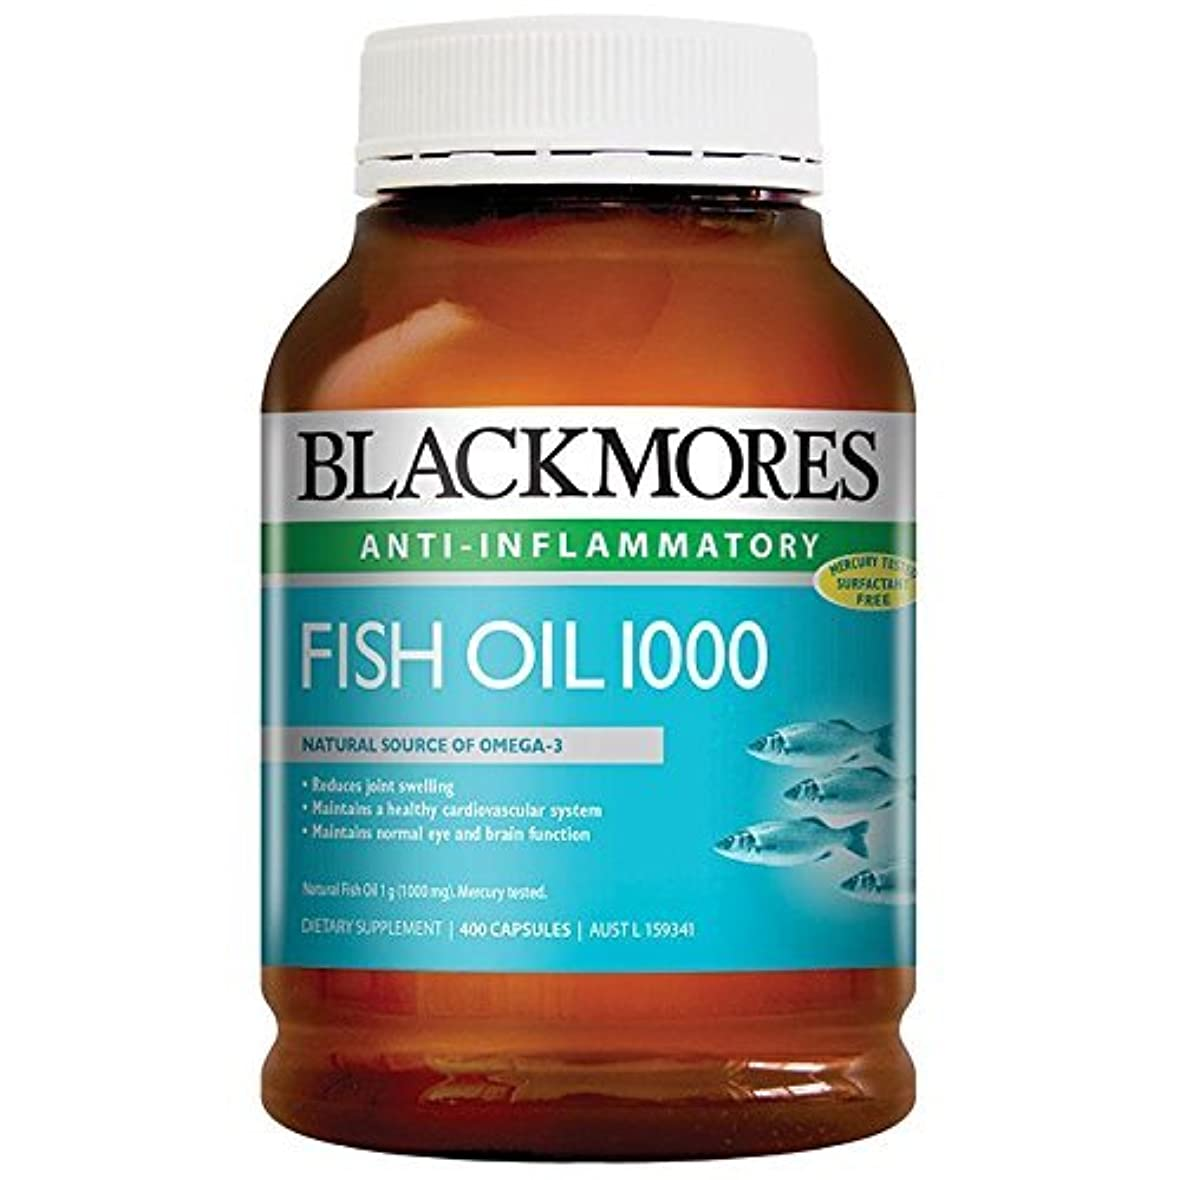 前件スナッチリボンBlackmores Fish Oil 400 Caps 1000 Omega3 Dha, EPA Fatty Acids with 1pcs Chinese Knot Gift by Blackmores LTD